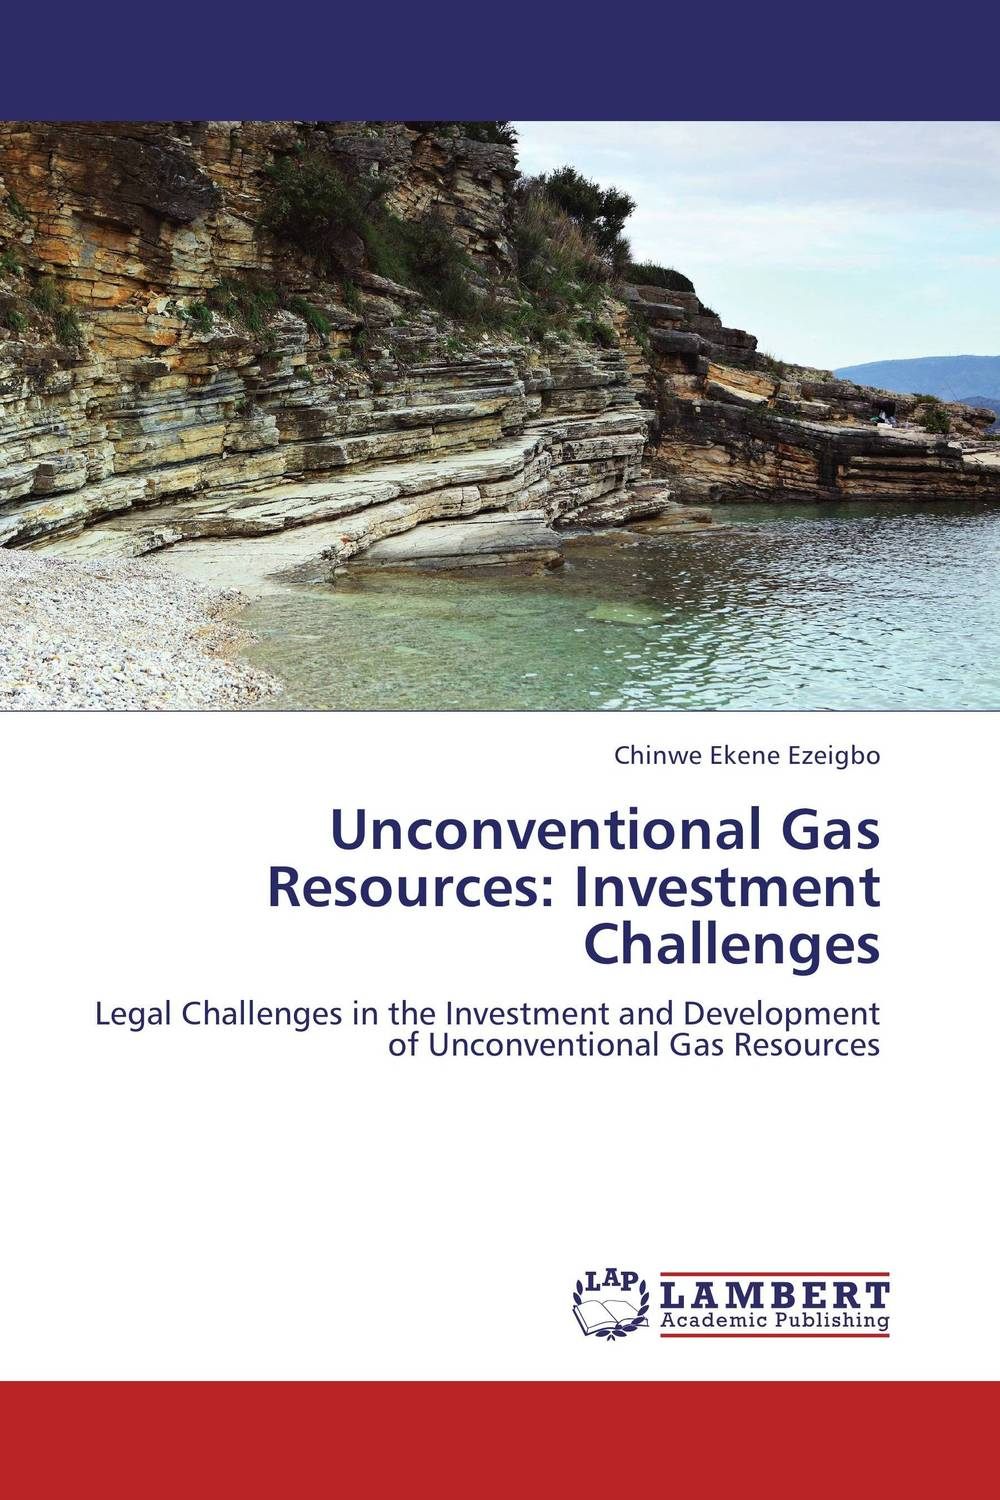 Unconventional Gas Resources: Investment Challenges estimating technically and economically recoverable unconventional gas